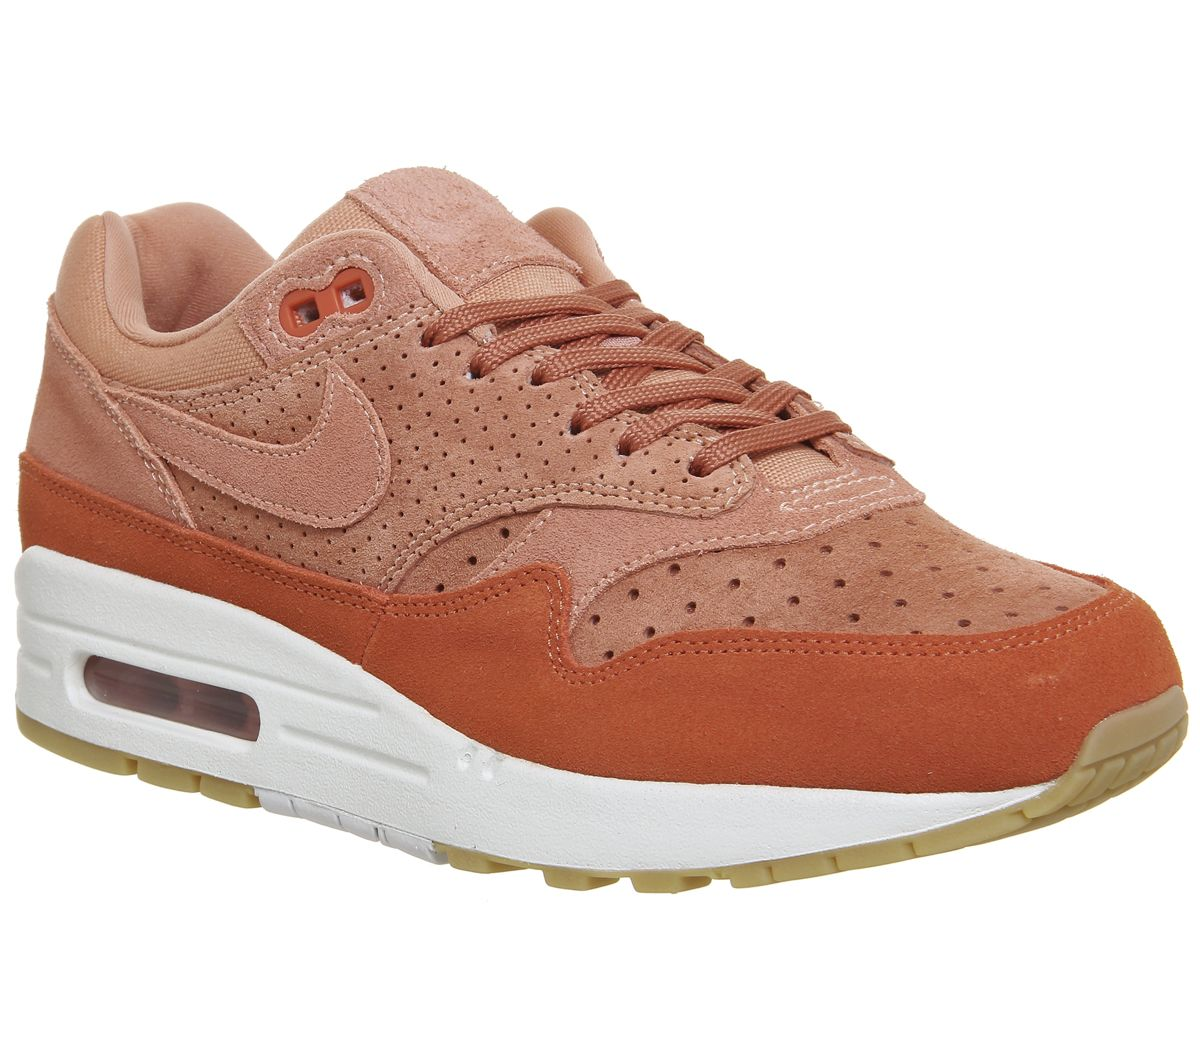 newest collection 0122e 193f7 Nike Air Max 1 Trainers Crimson Bliss Crimson Bliss - Hers trainers